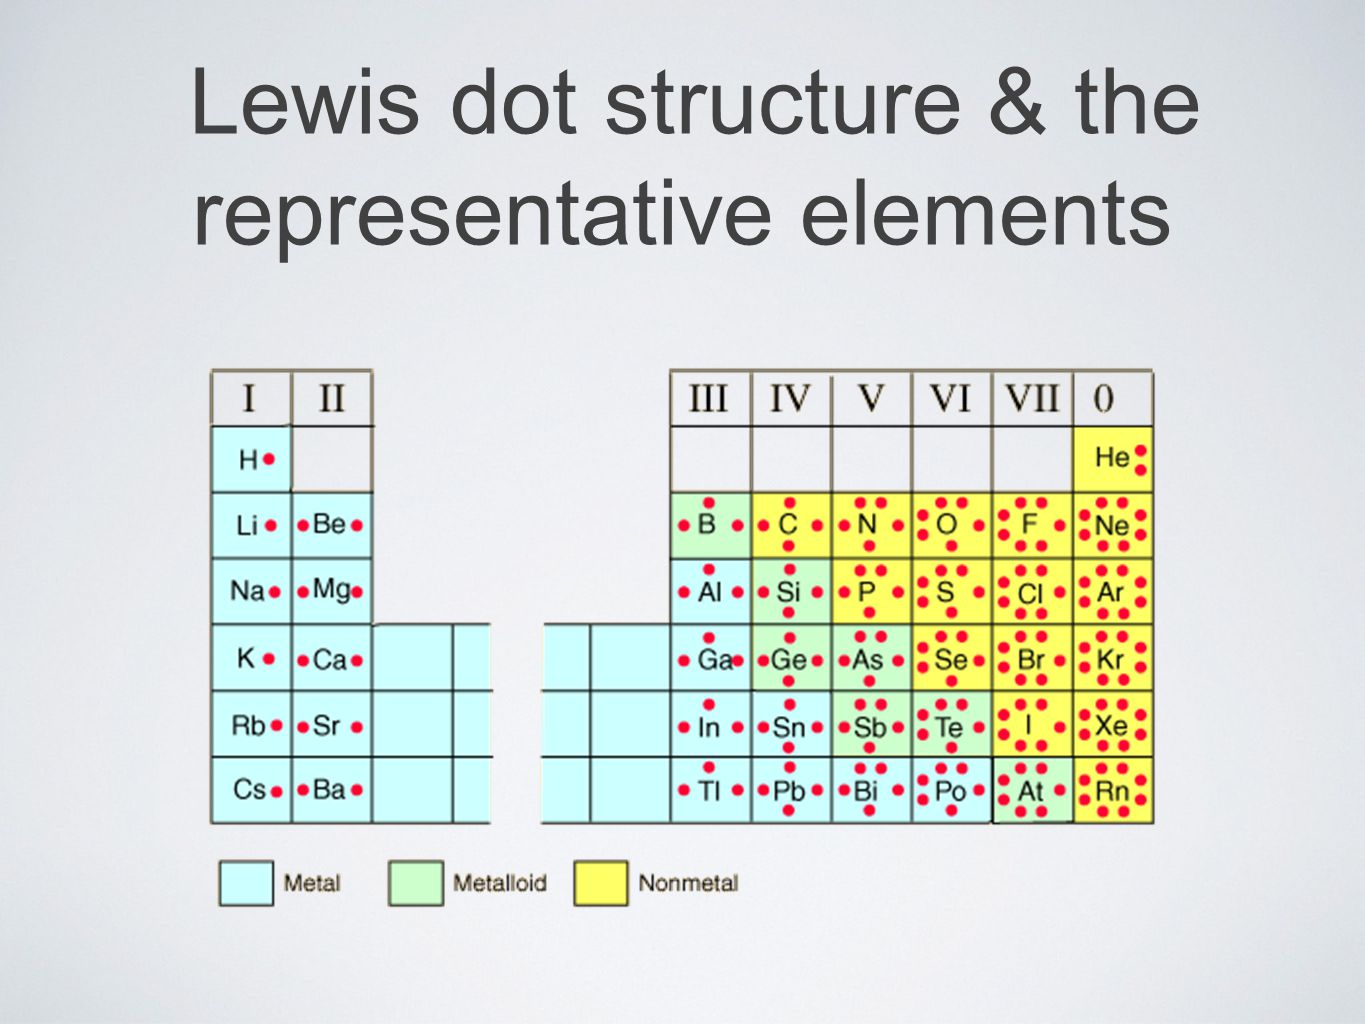 Lewis dot structure & the representative elements